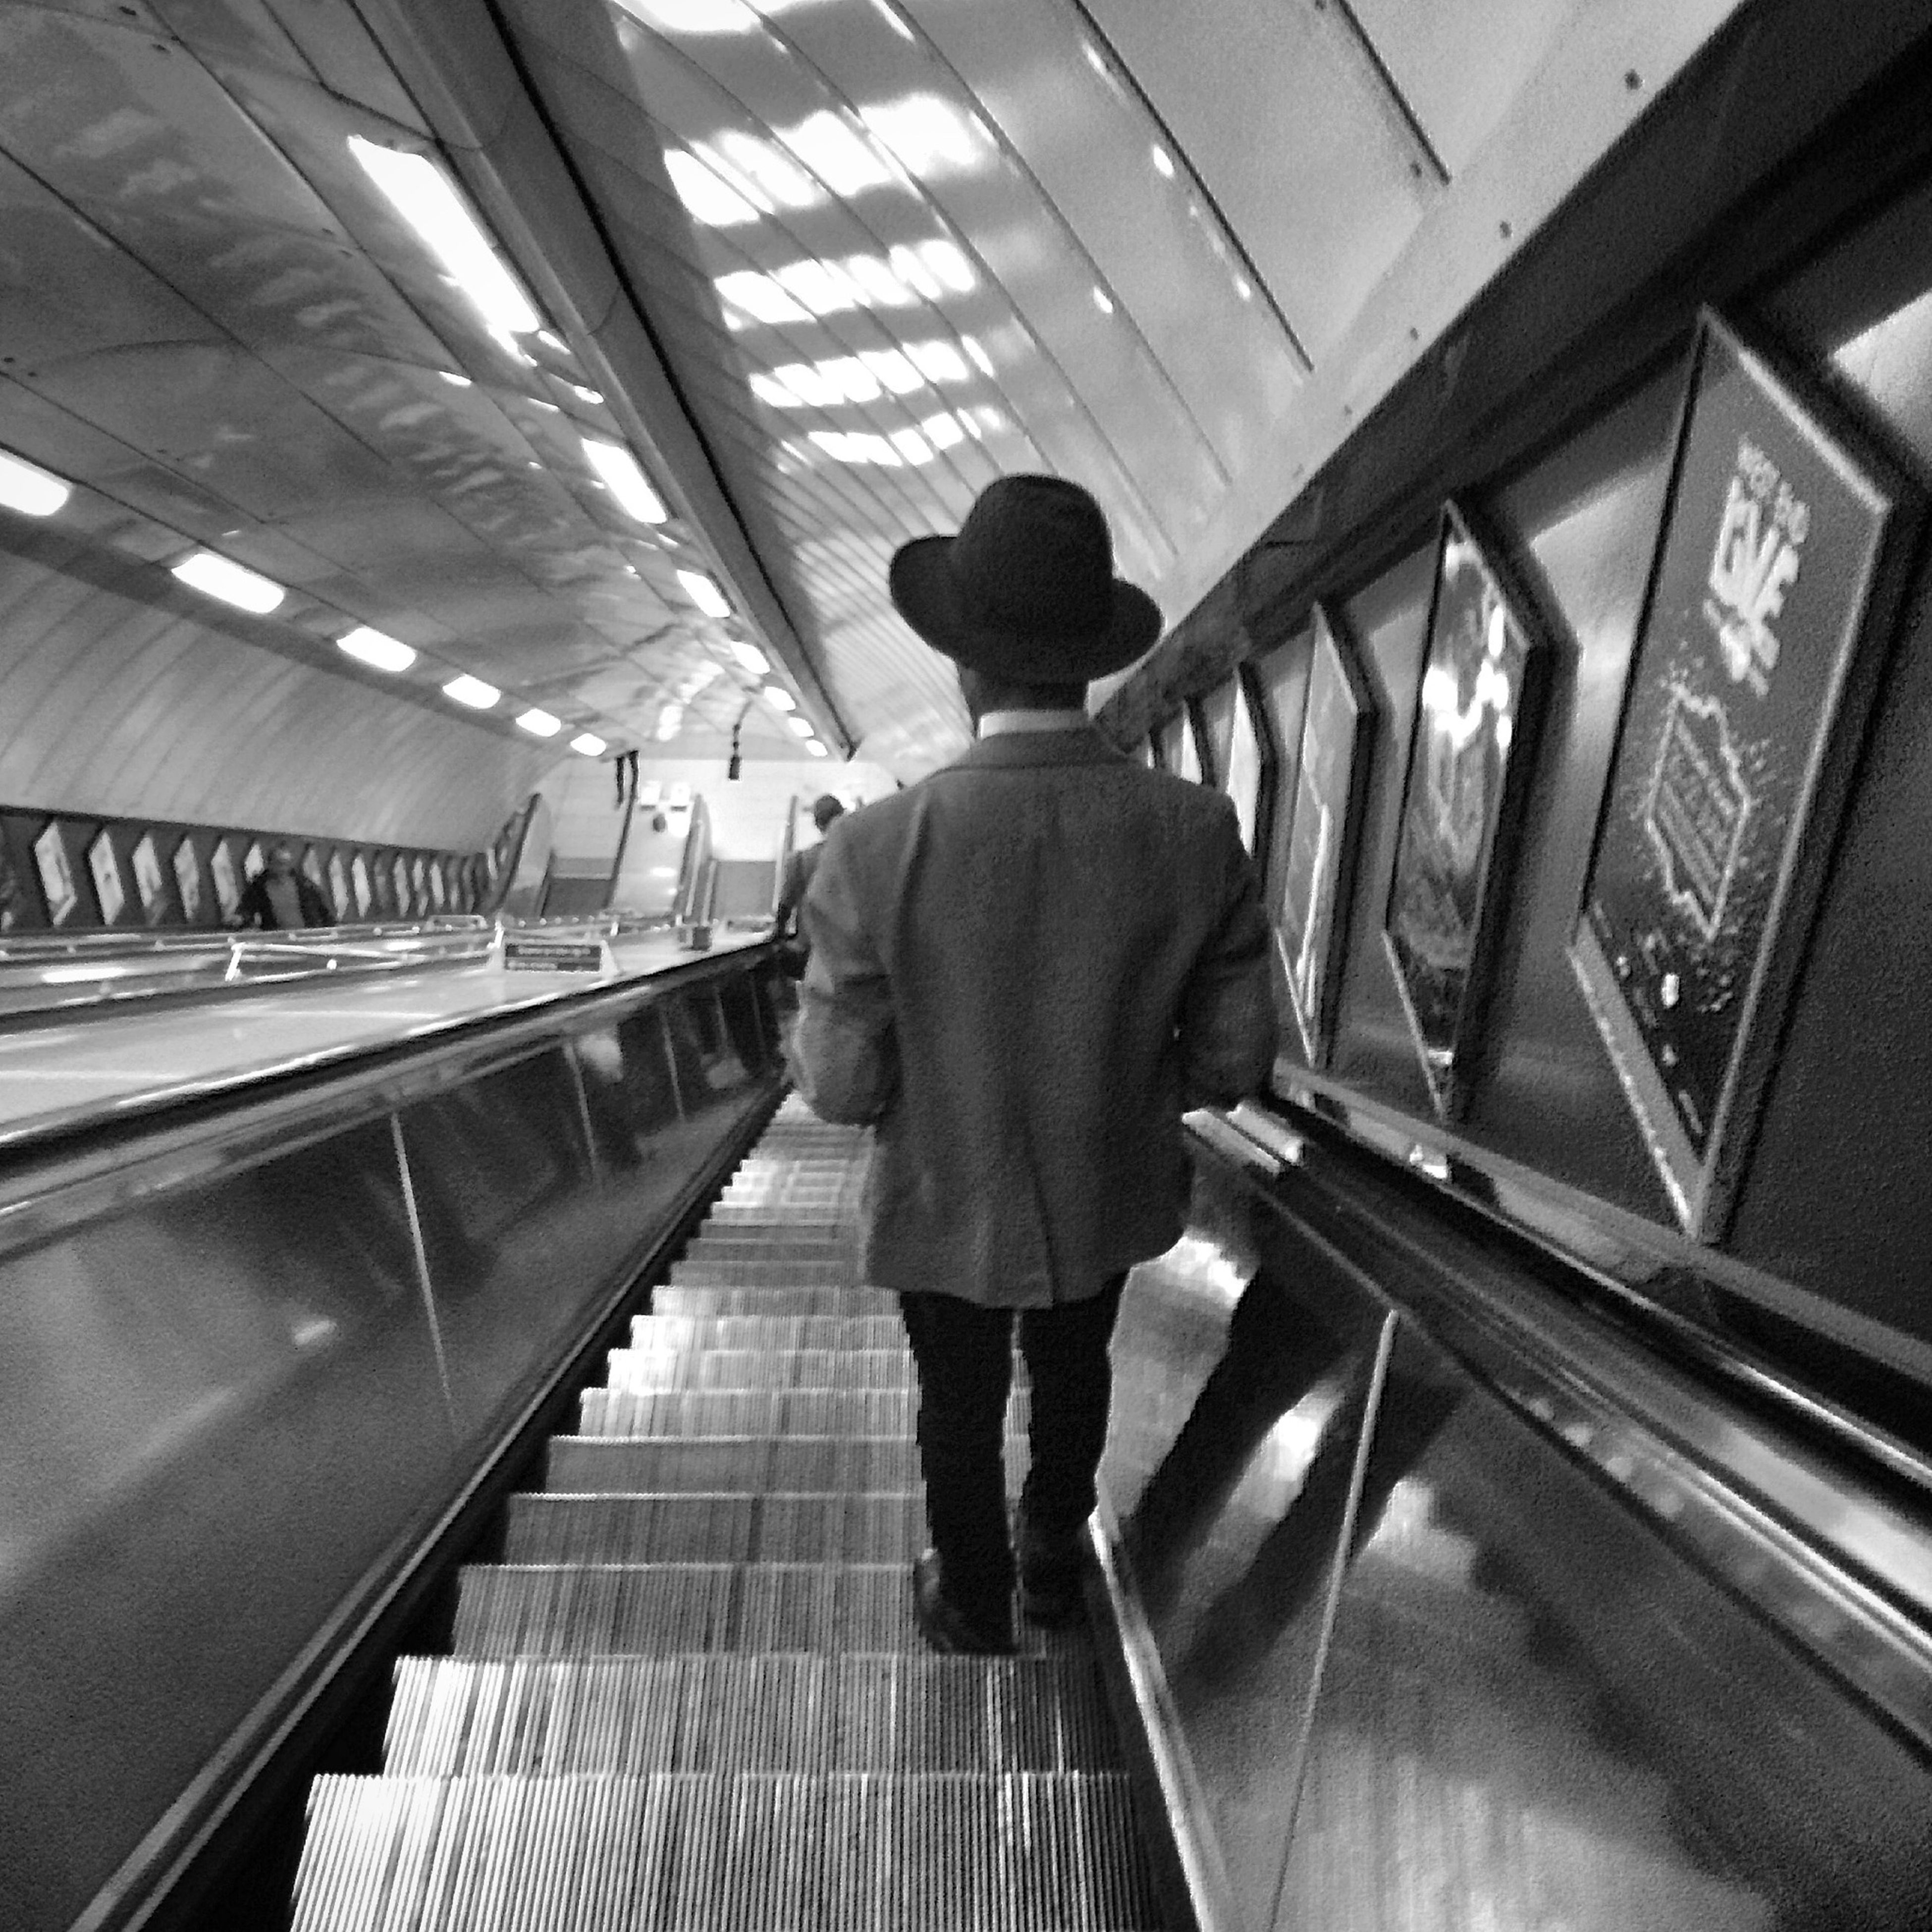 indoors, lifestyles, rear view, full length, escalator, ceiling, railing, men, steps, leisure activity, walking, standing, steps and staircases, railroad station, architecture, casual clothing, built structure, person